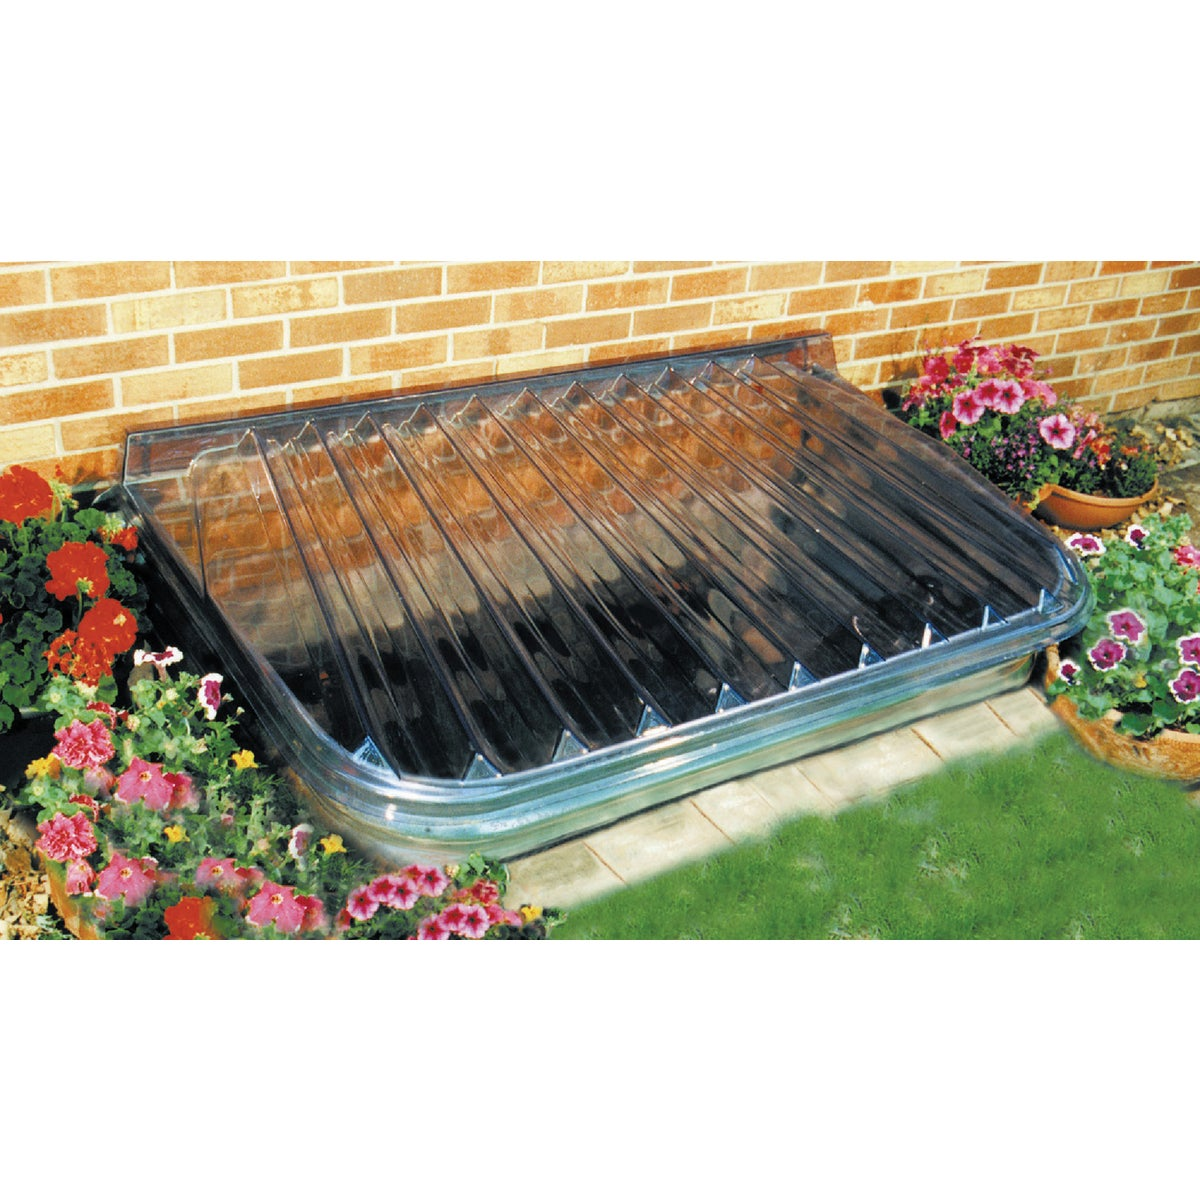 44X38 WINDOW WELL COVER - 4236EG by Maccourt Products